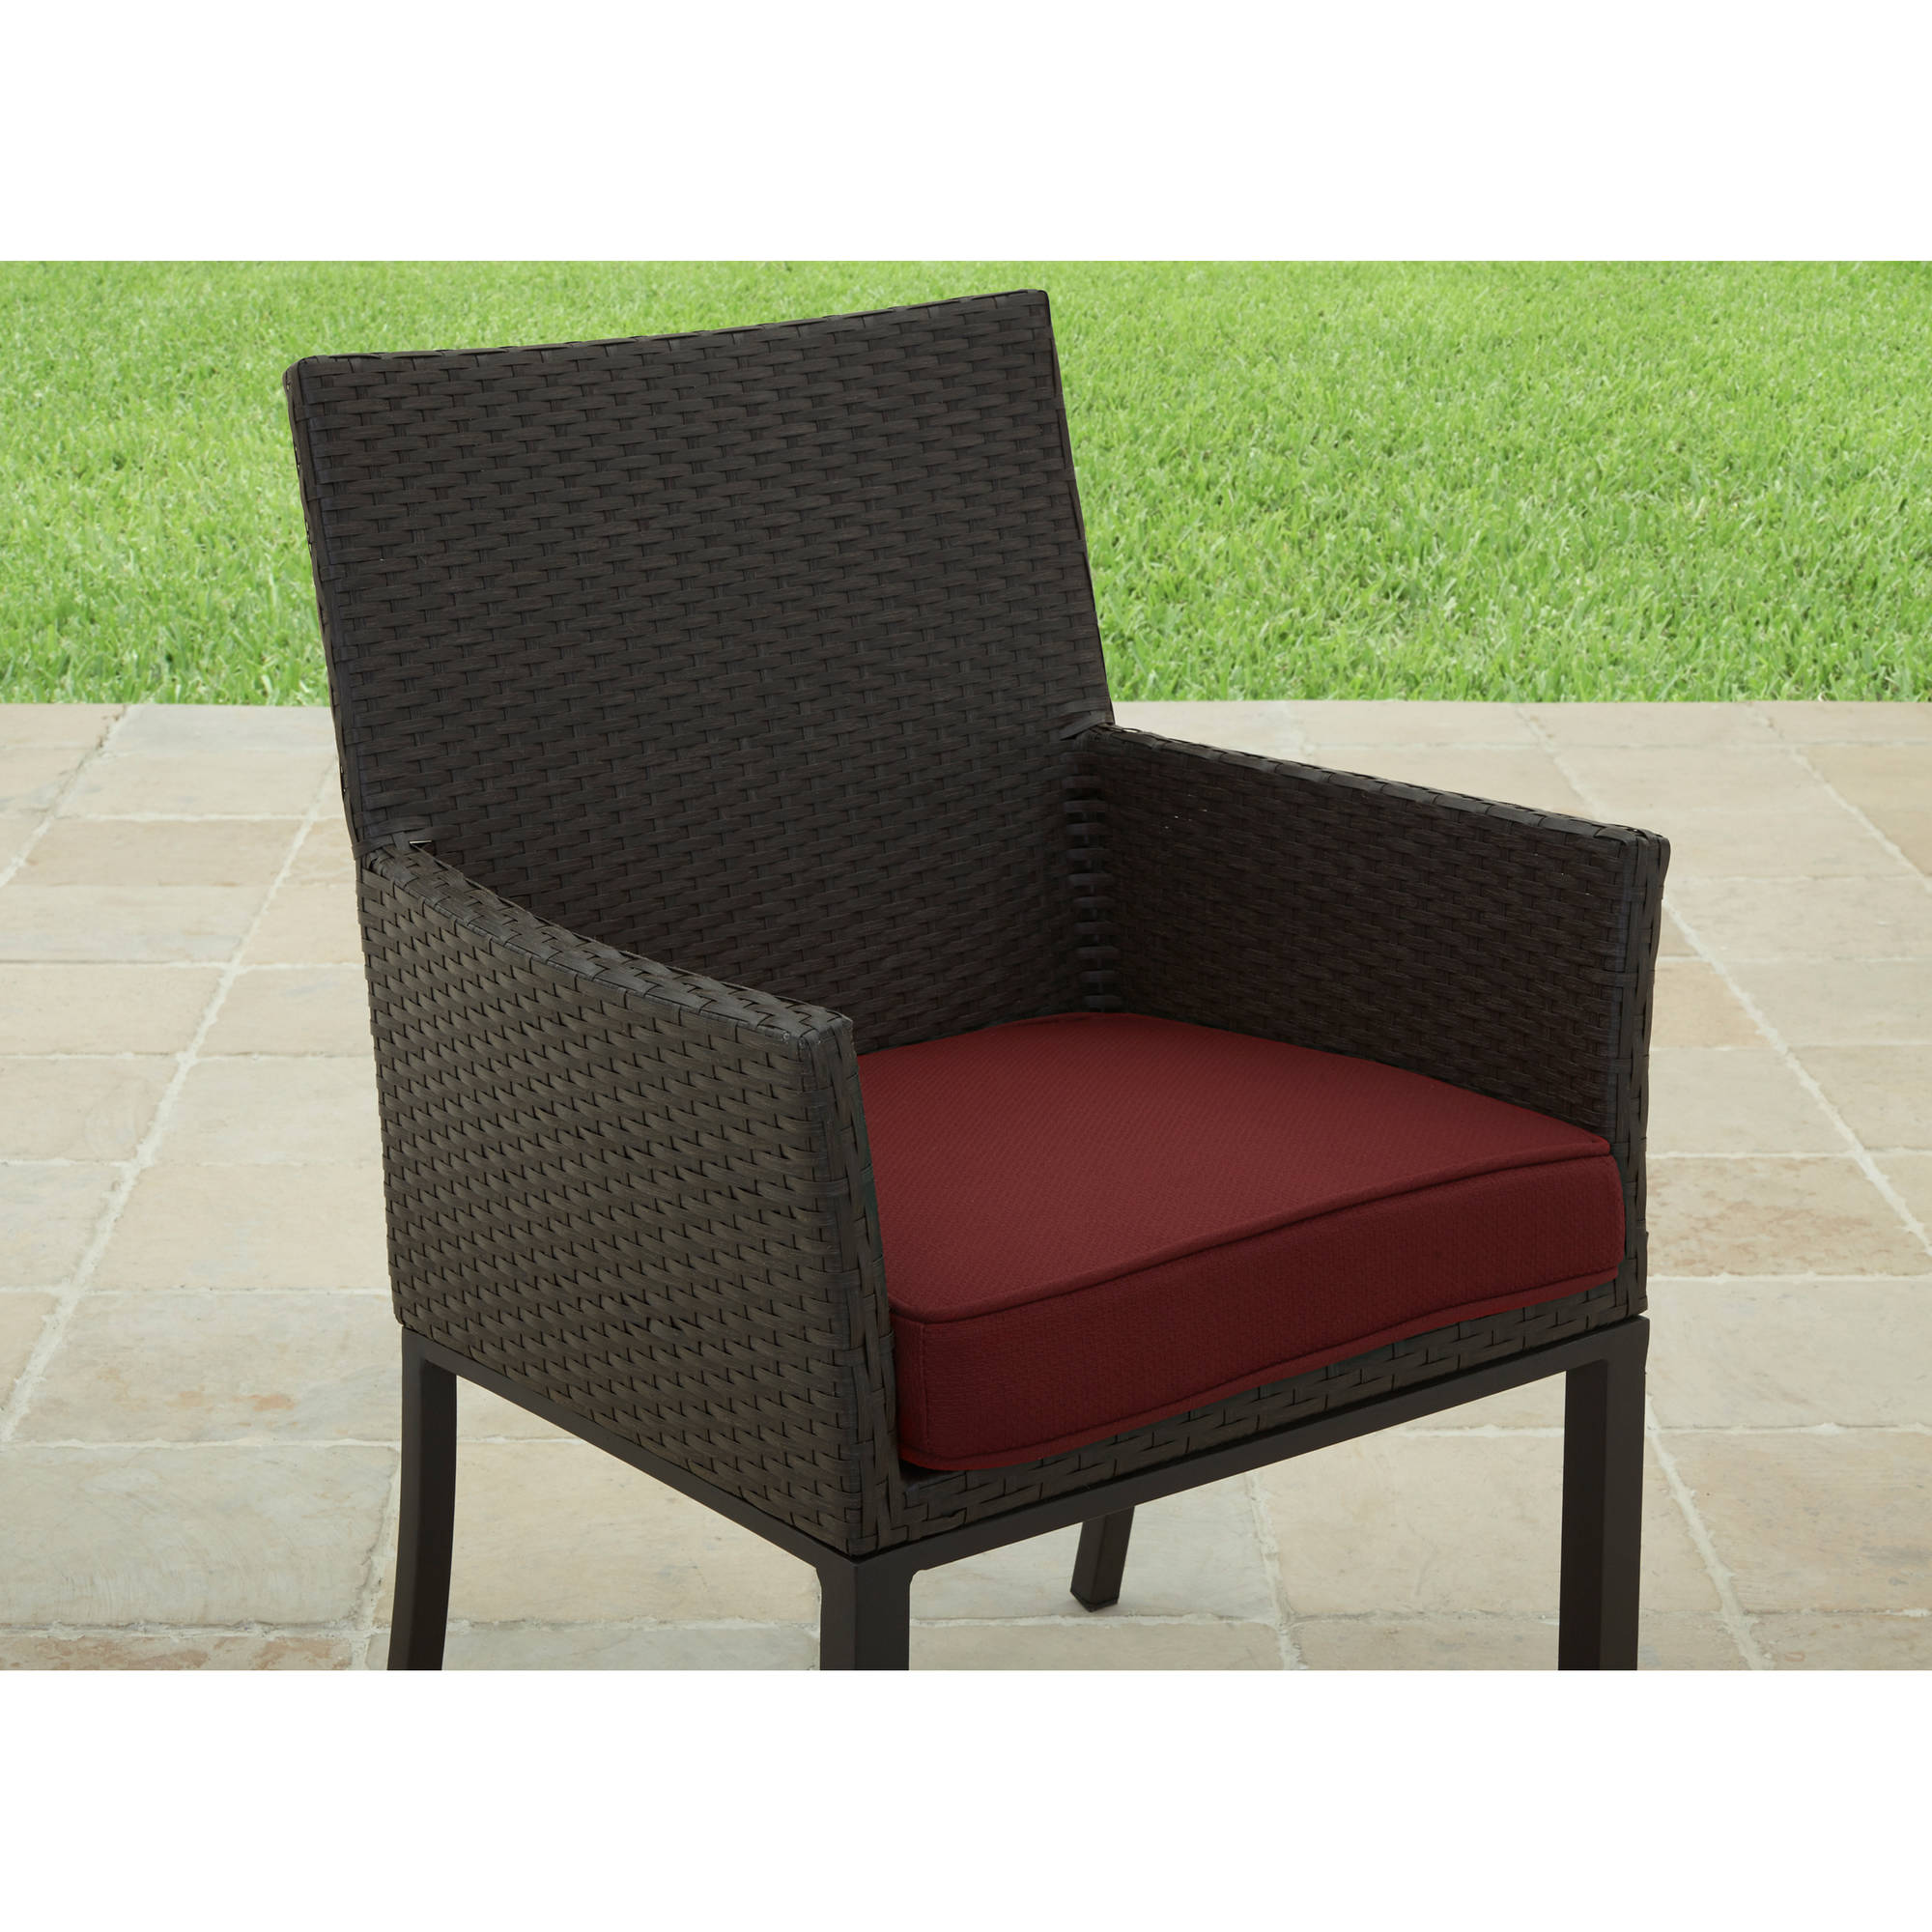 Better Homes and Gardens Rush Valley Outdoor Dining Chair, Set of 6